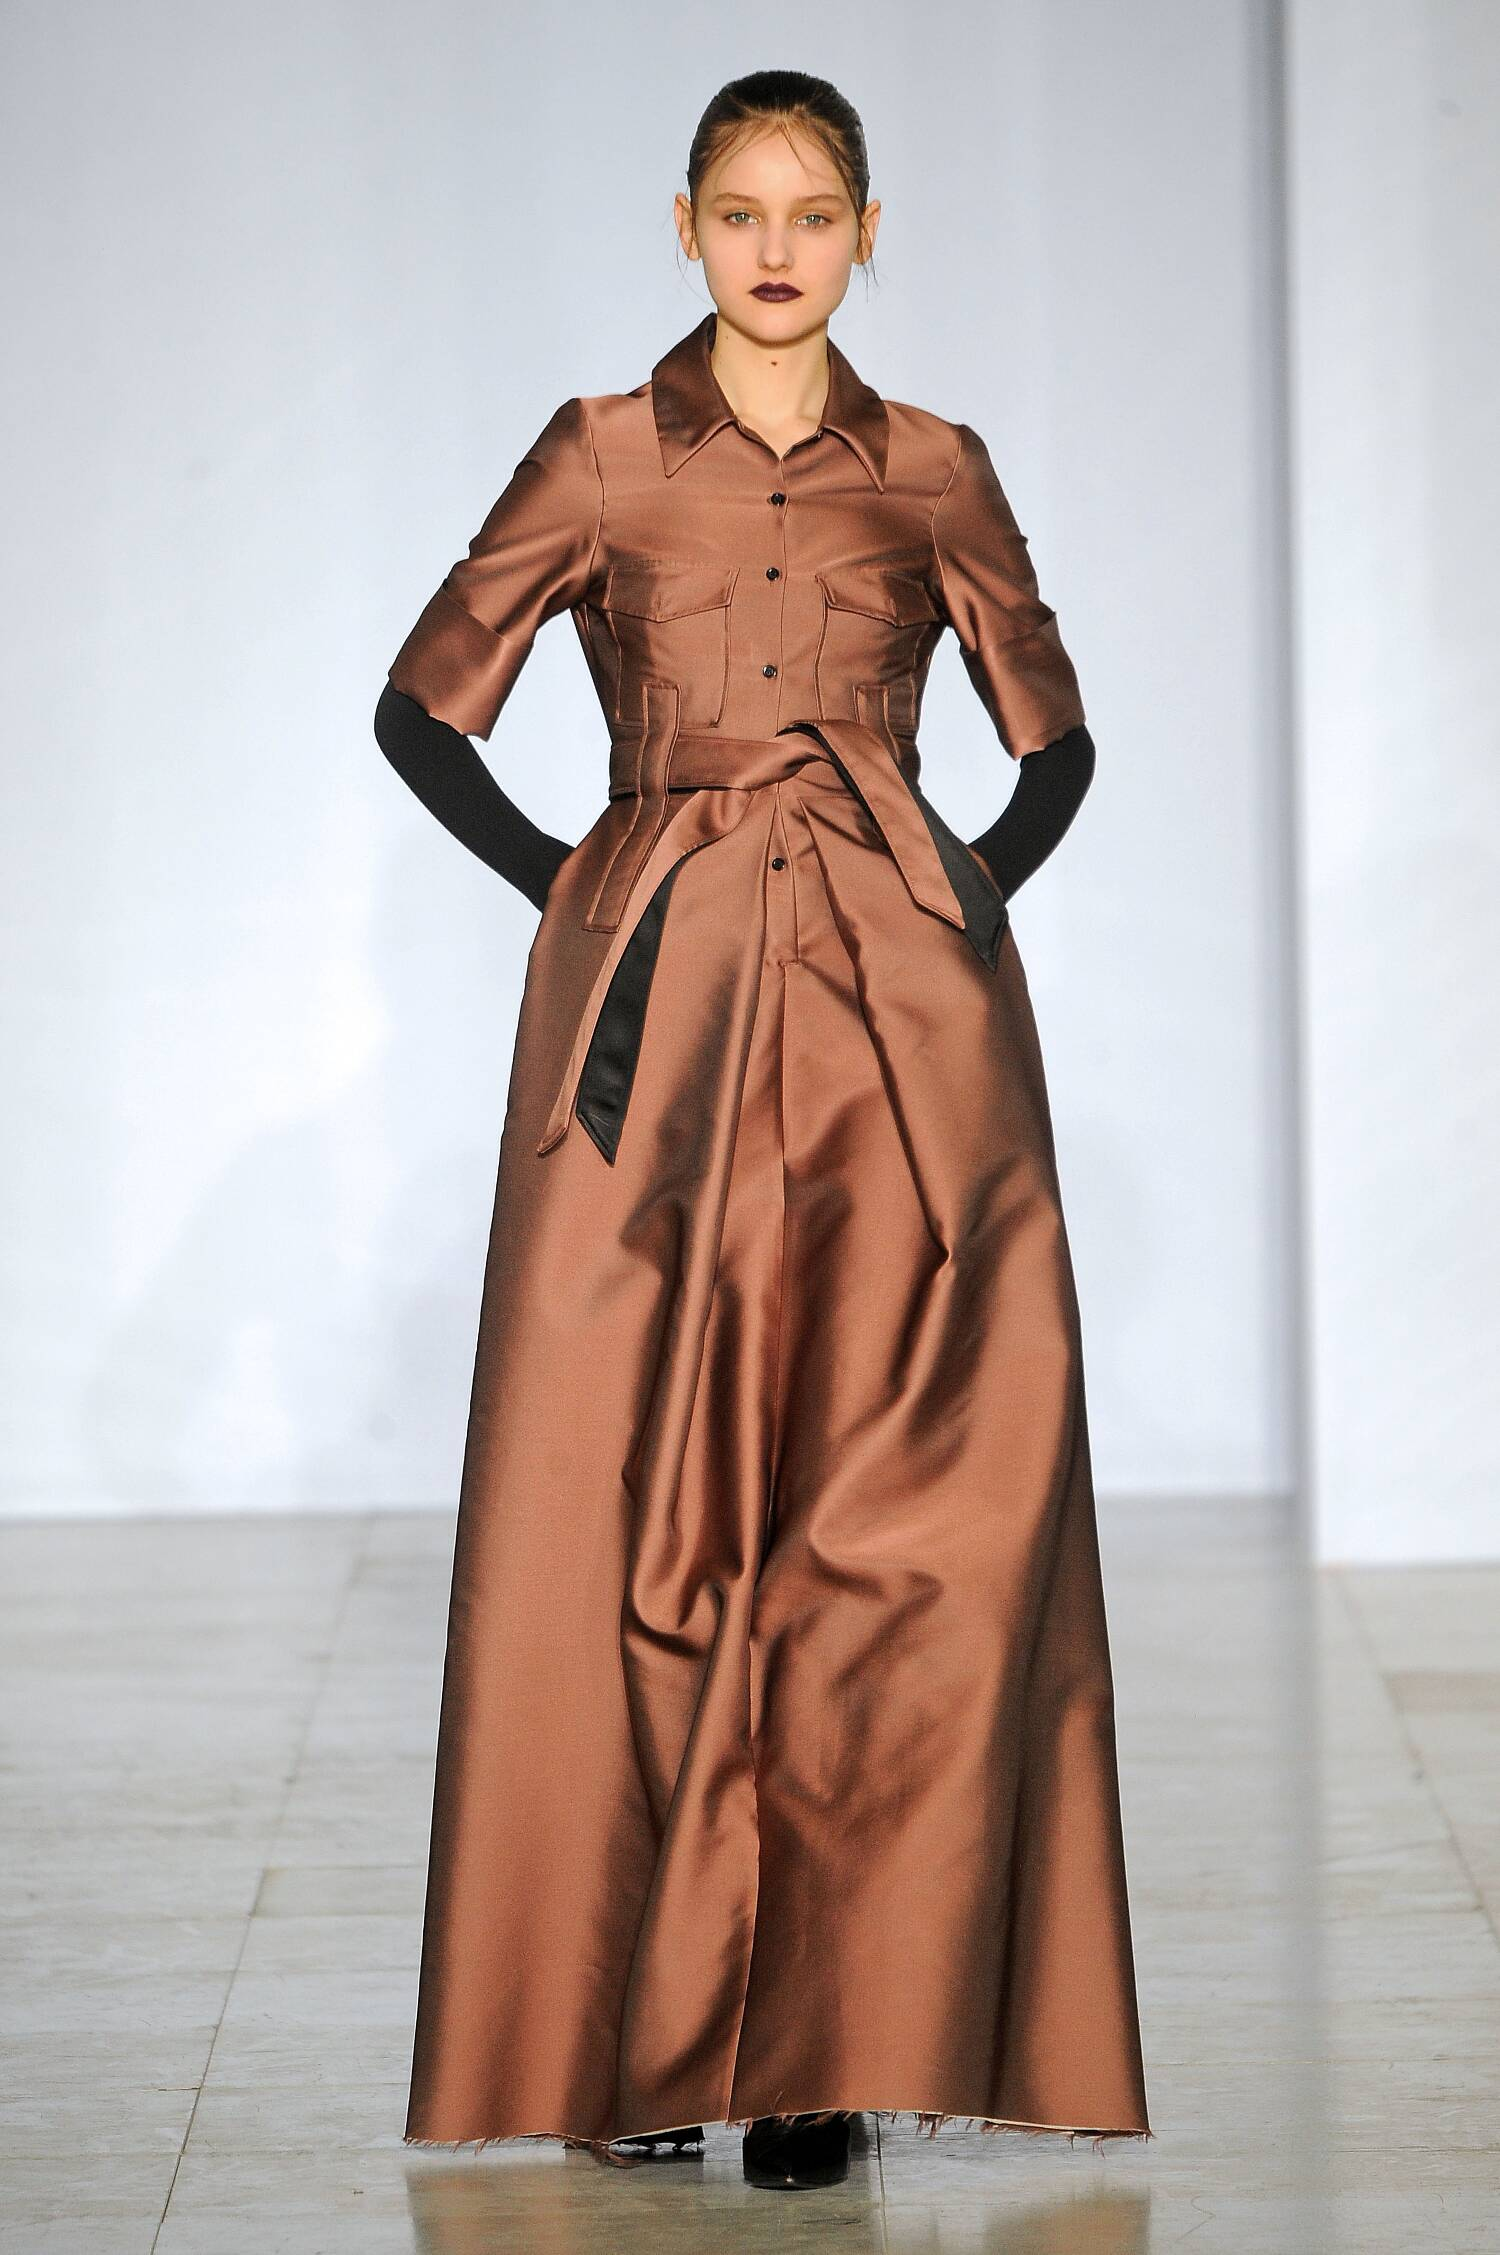 Winter Fashion Trends 2015 2016 Yang Li Collection